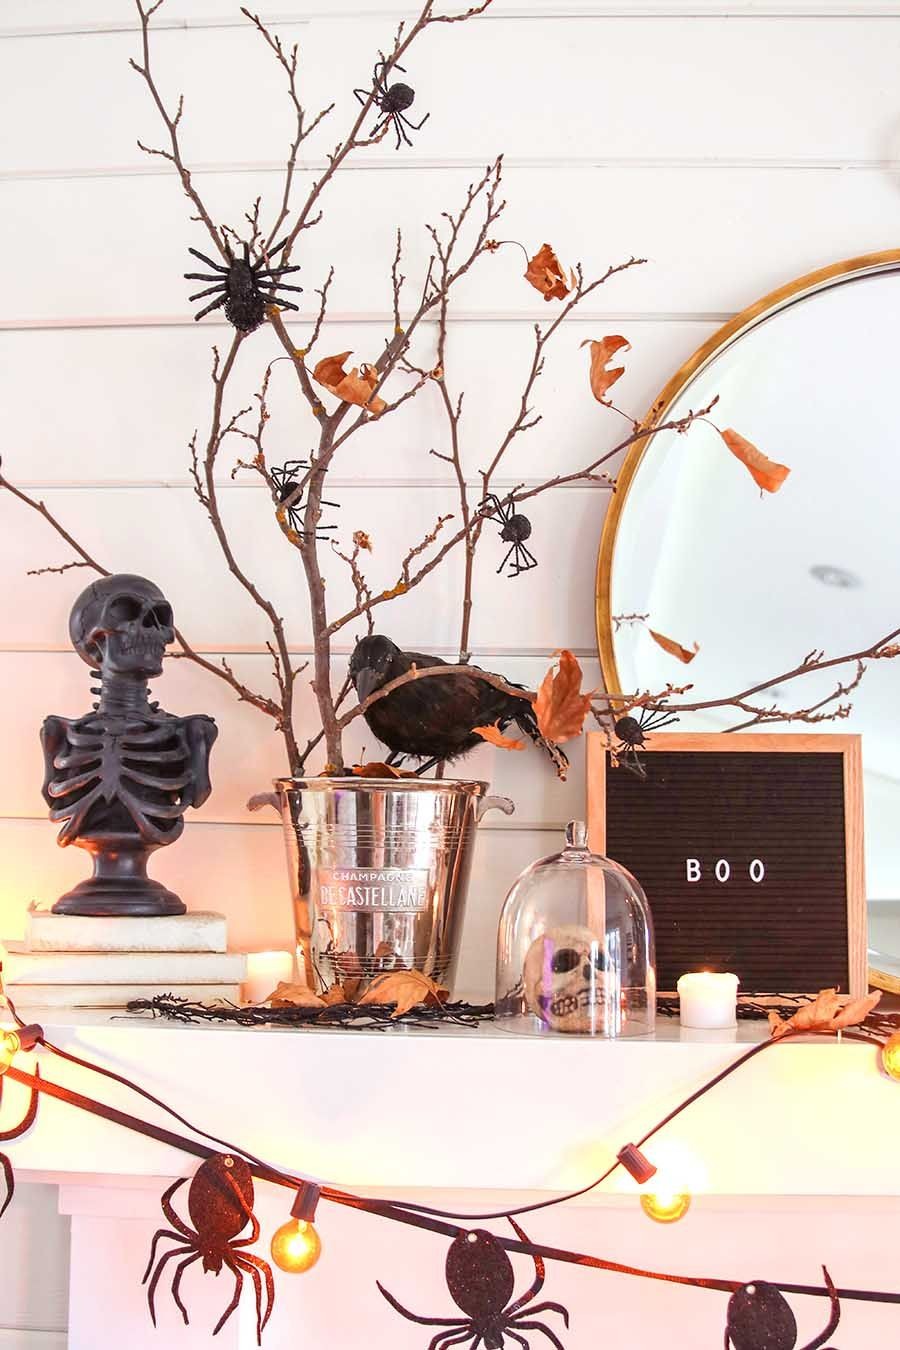 10 Stylish And Modern Halloween Decor Ideas For Your Home_4 halloween decor ideas 10 Stylish And Modern Halloween Decor Ideas For Your Home 10 Stylish And Modern Halloween Decor Ideas For Your Home 4